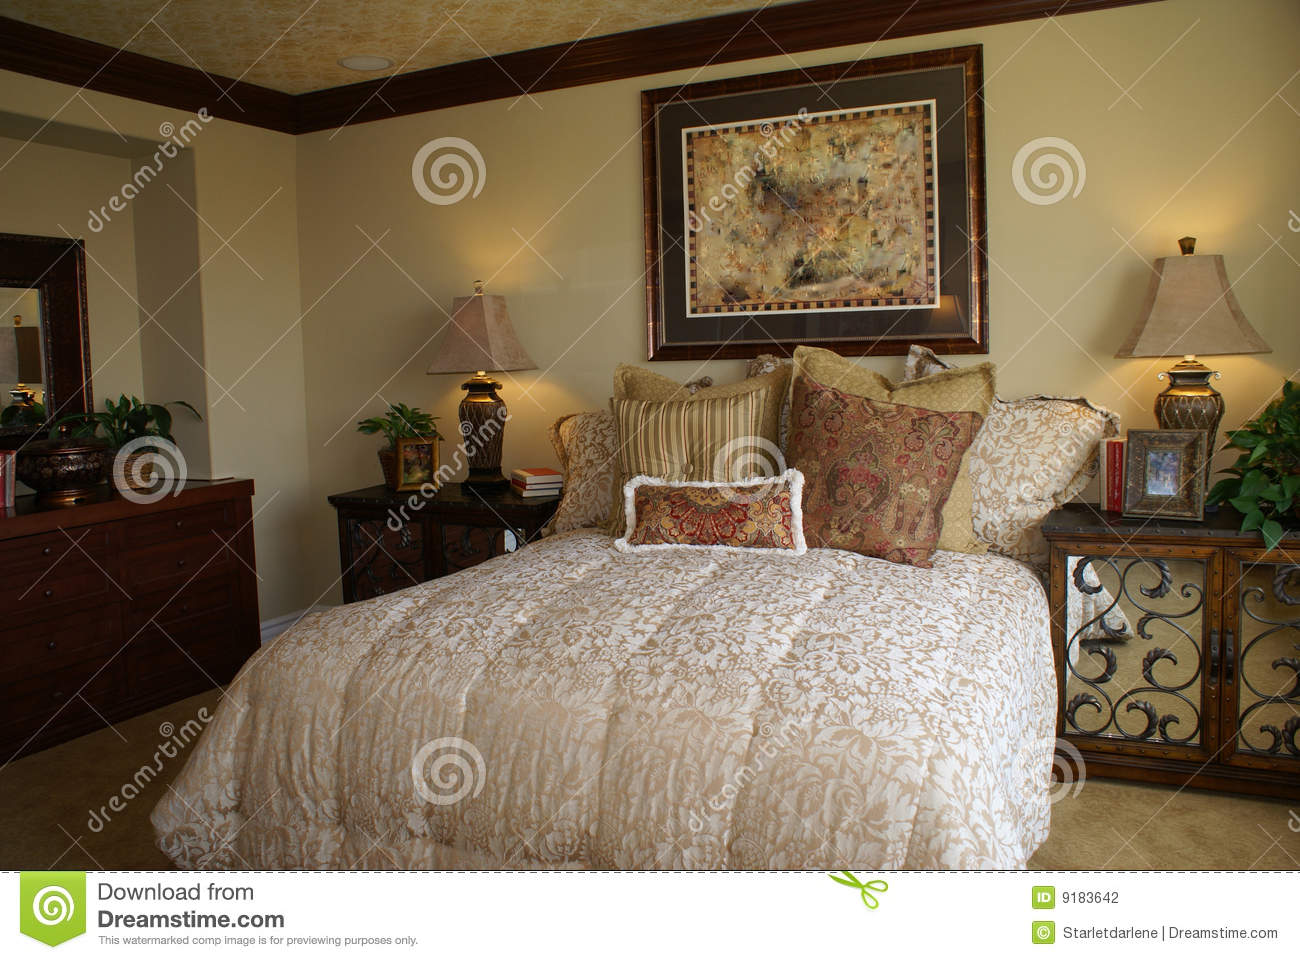 Elegant master bedroom stock photography image 9183642 Elegant master bedroom bedding